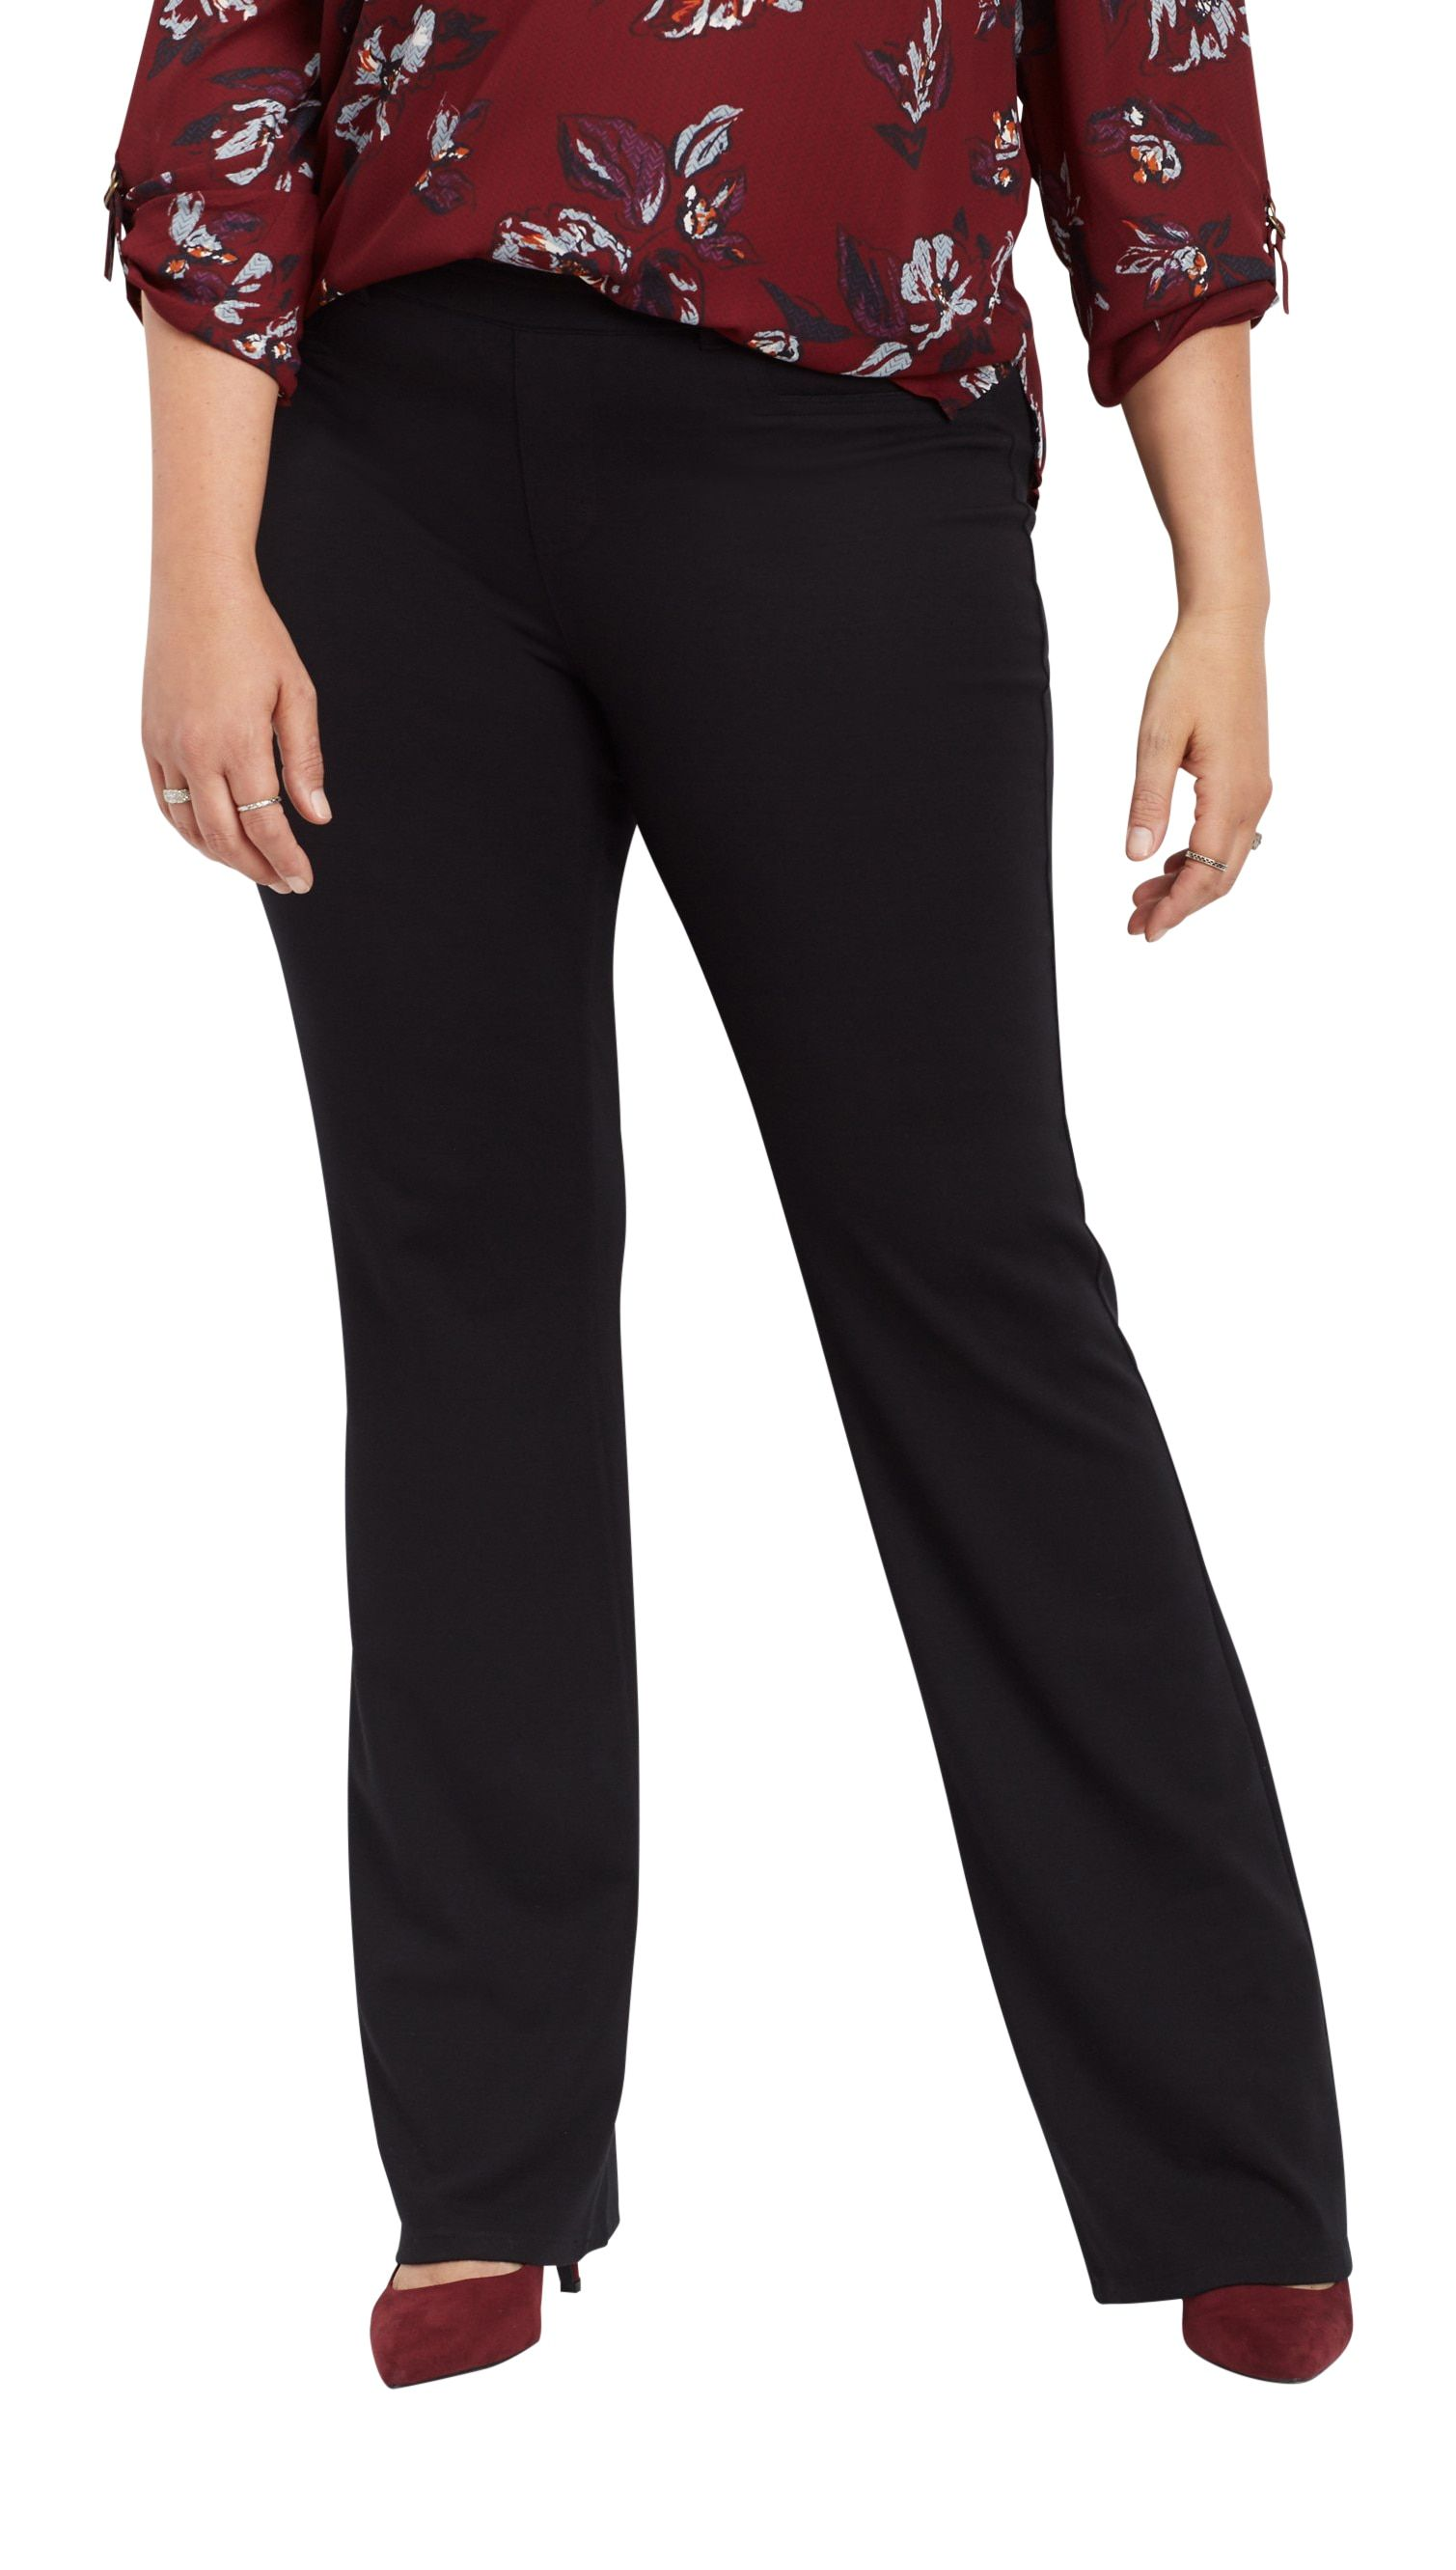 Maurices Plus Size Pull On Black Ponte Bootcut Pant Walmart Com Bootcut Pants Plus Size Maurices Plus Size [ 2663 x 1509 Pixel ]